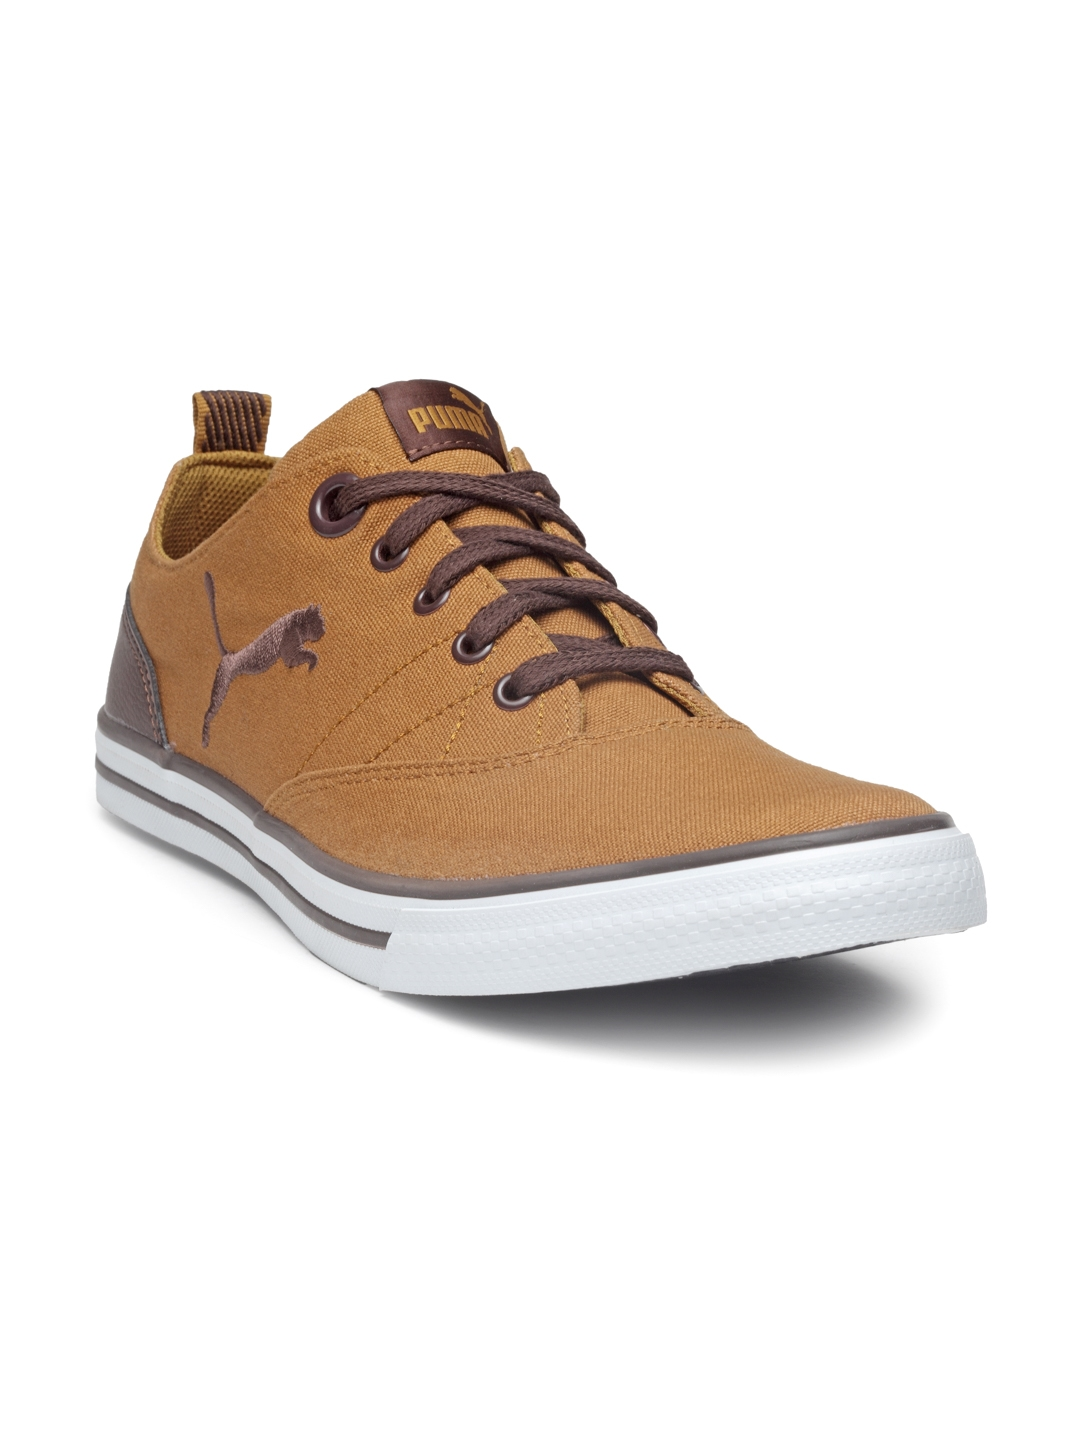 Buy Puma Men Camel Brown Slyde NU IDP Sneakers - Casual Shoes for ... 6273a3a286d3